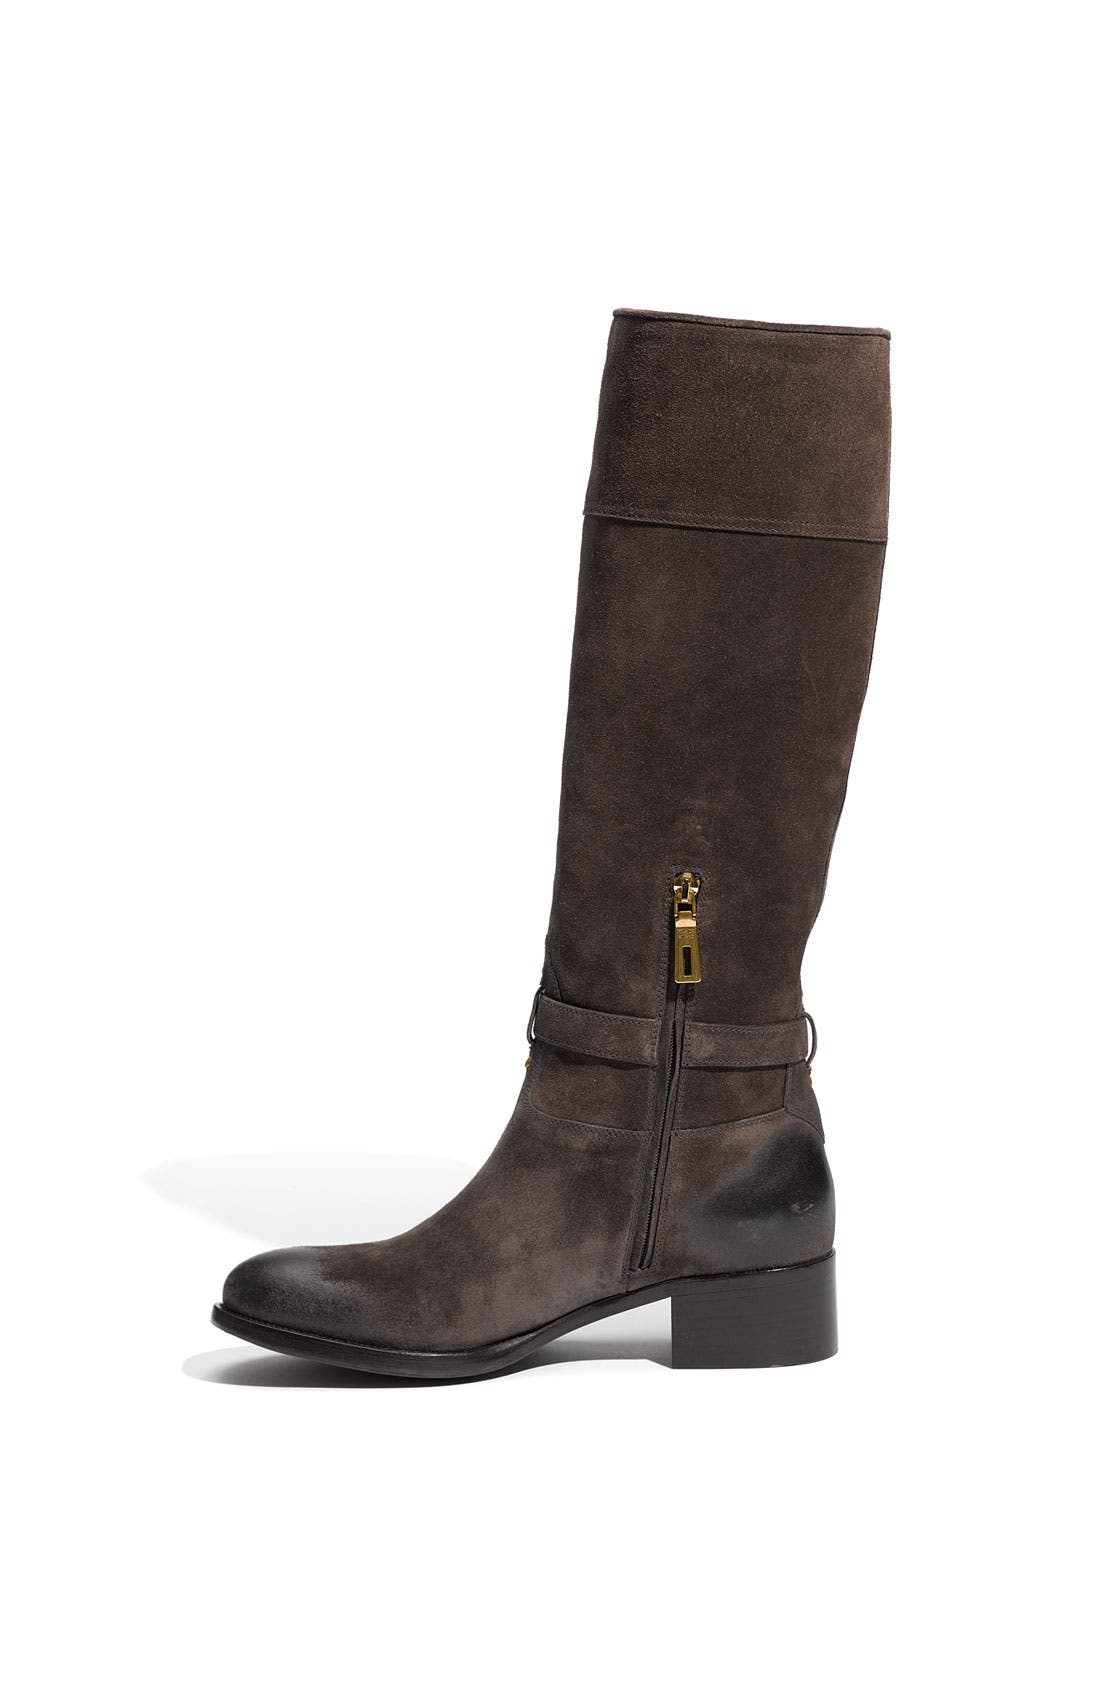 Leather Riding Boot,                             Alternate thumbnail 2, color,                             020